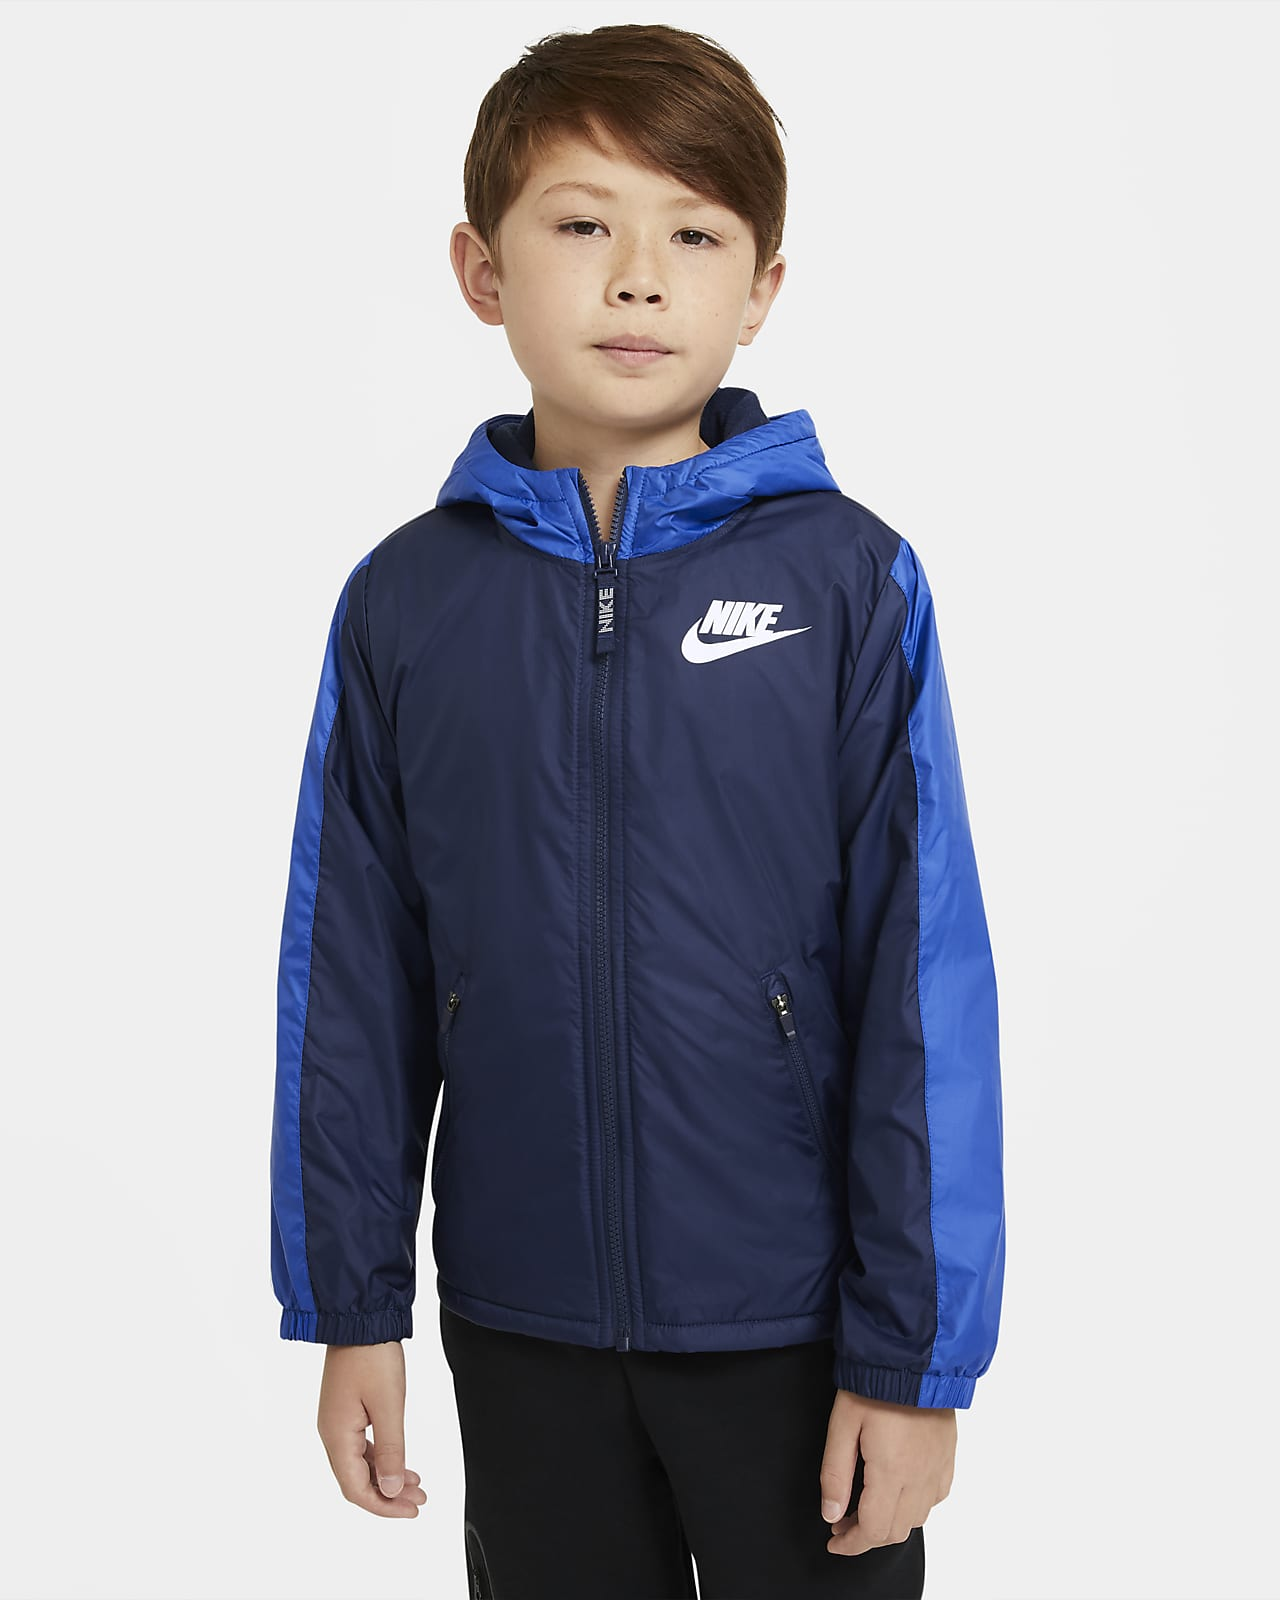 Nike Sportswear Older Kids' Fleece-Lined Jacket